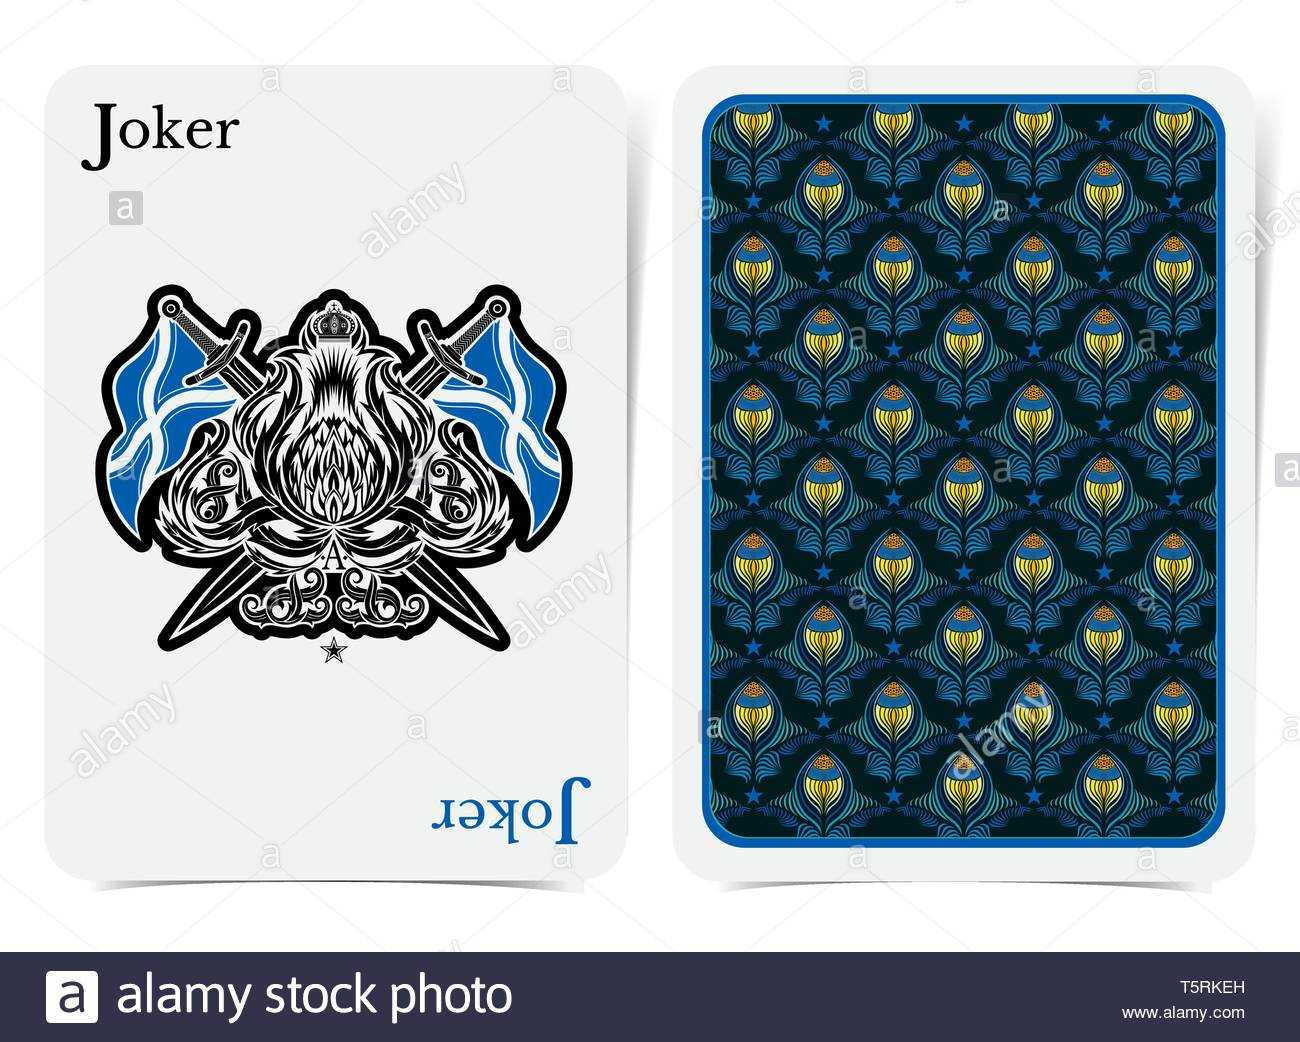 Card Face Of Joker With Thistle Plant Pattern With Crossed With Joker Card Template